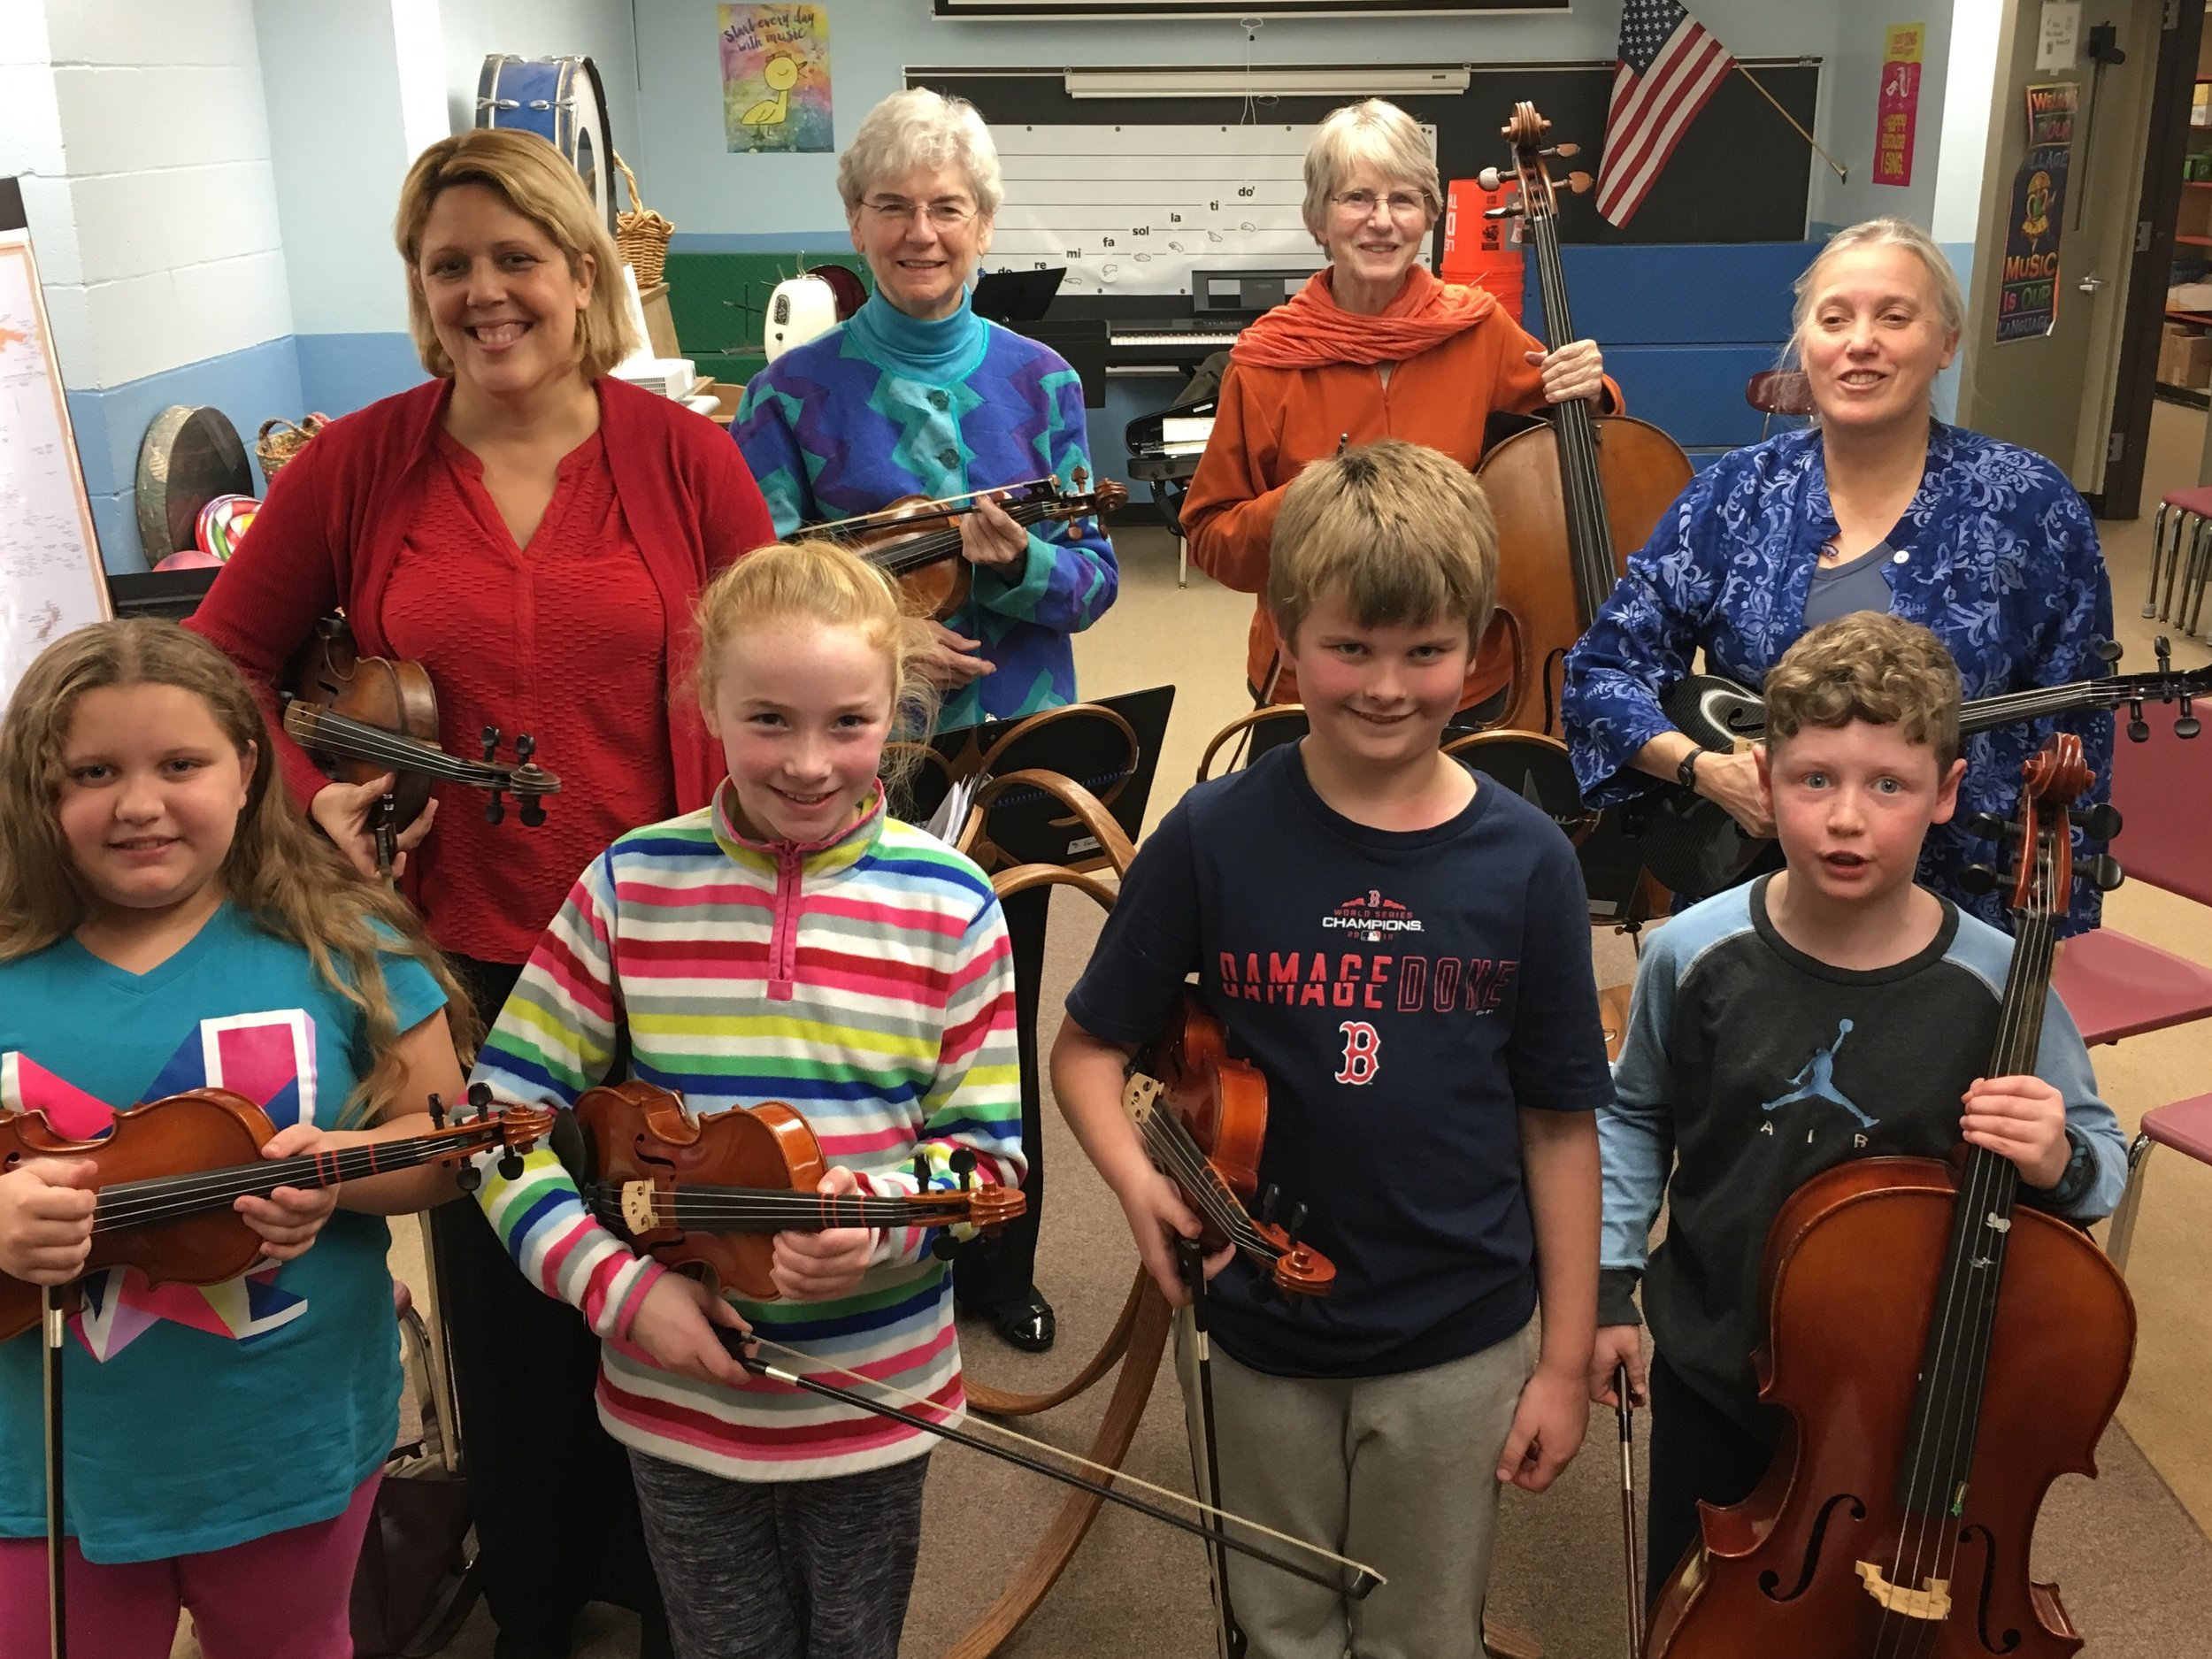 The MITS string quartet. Wendy Rios, Pat Petersen, Bunny Reardon, Diane Guillemette .,  with children from Fishing cove elementary school, north kingstown, ri.